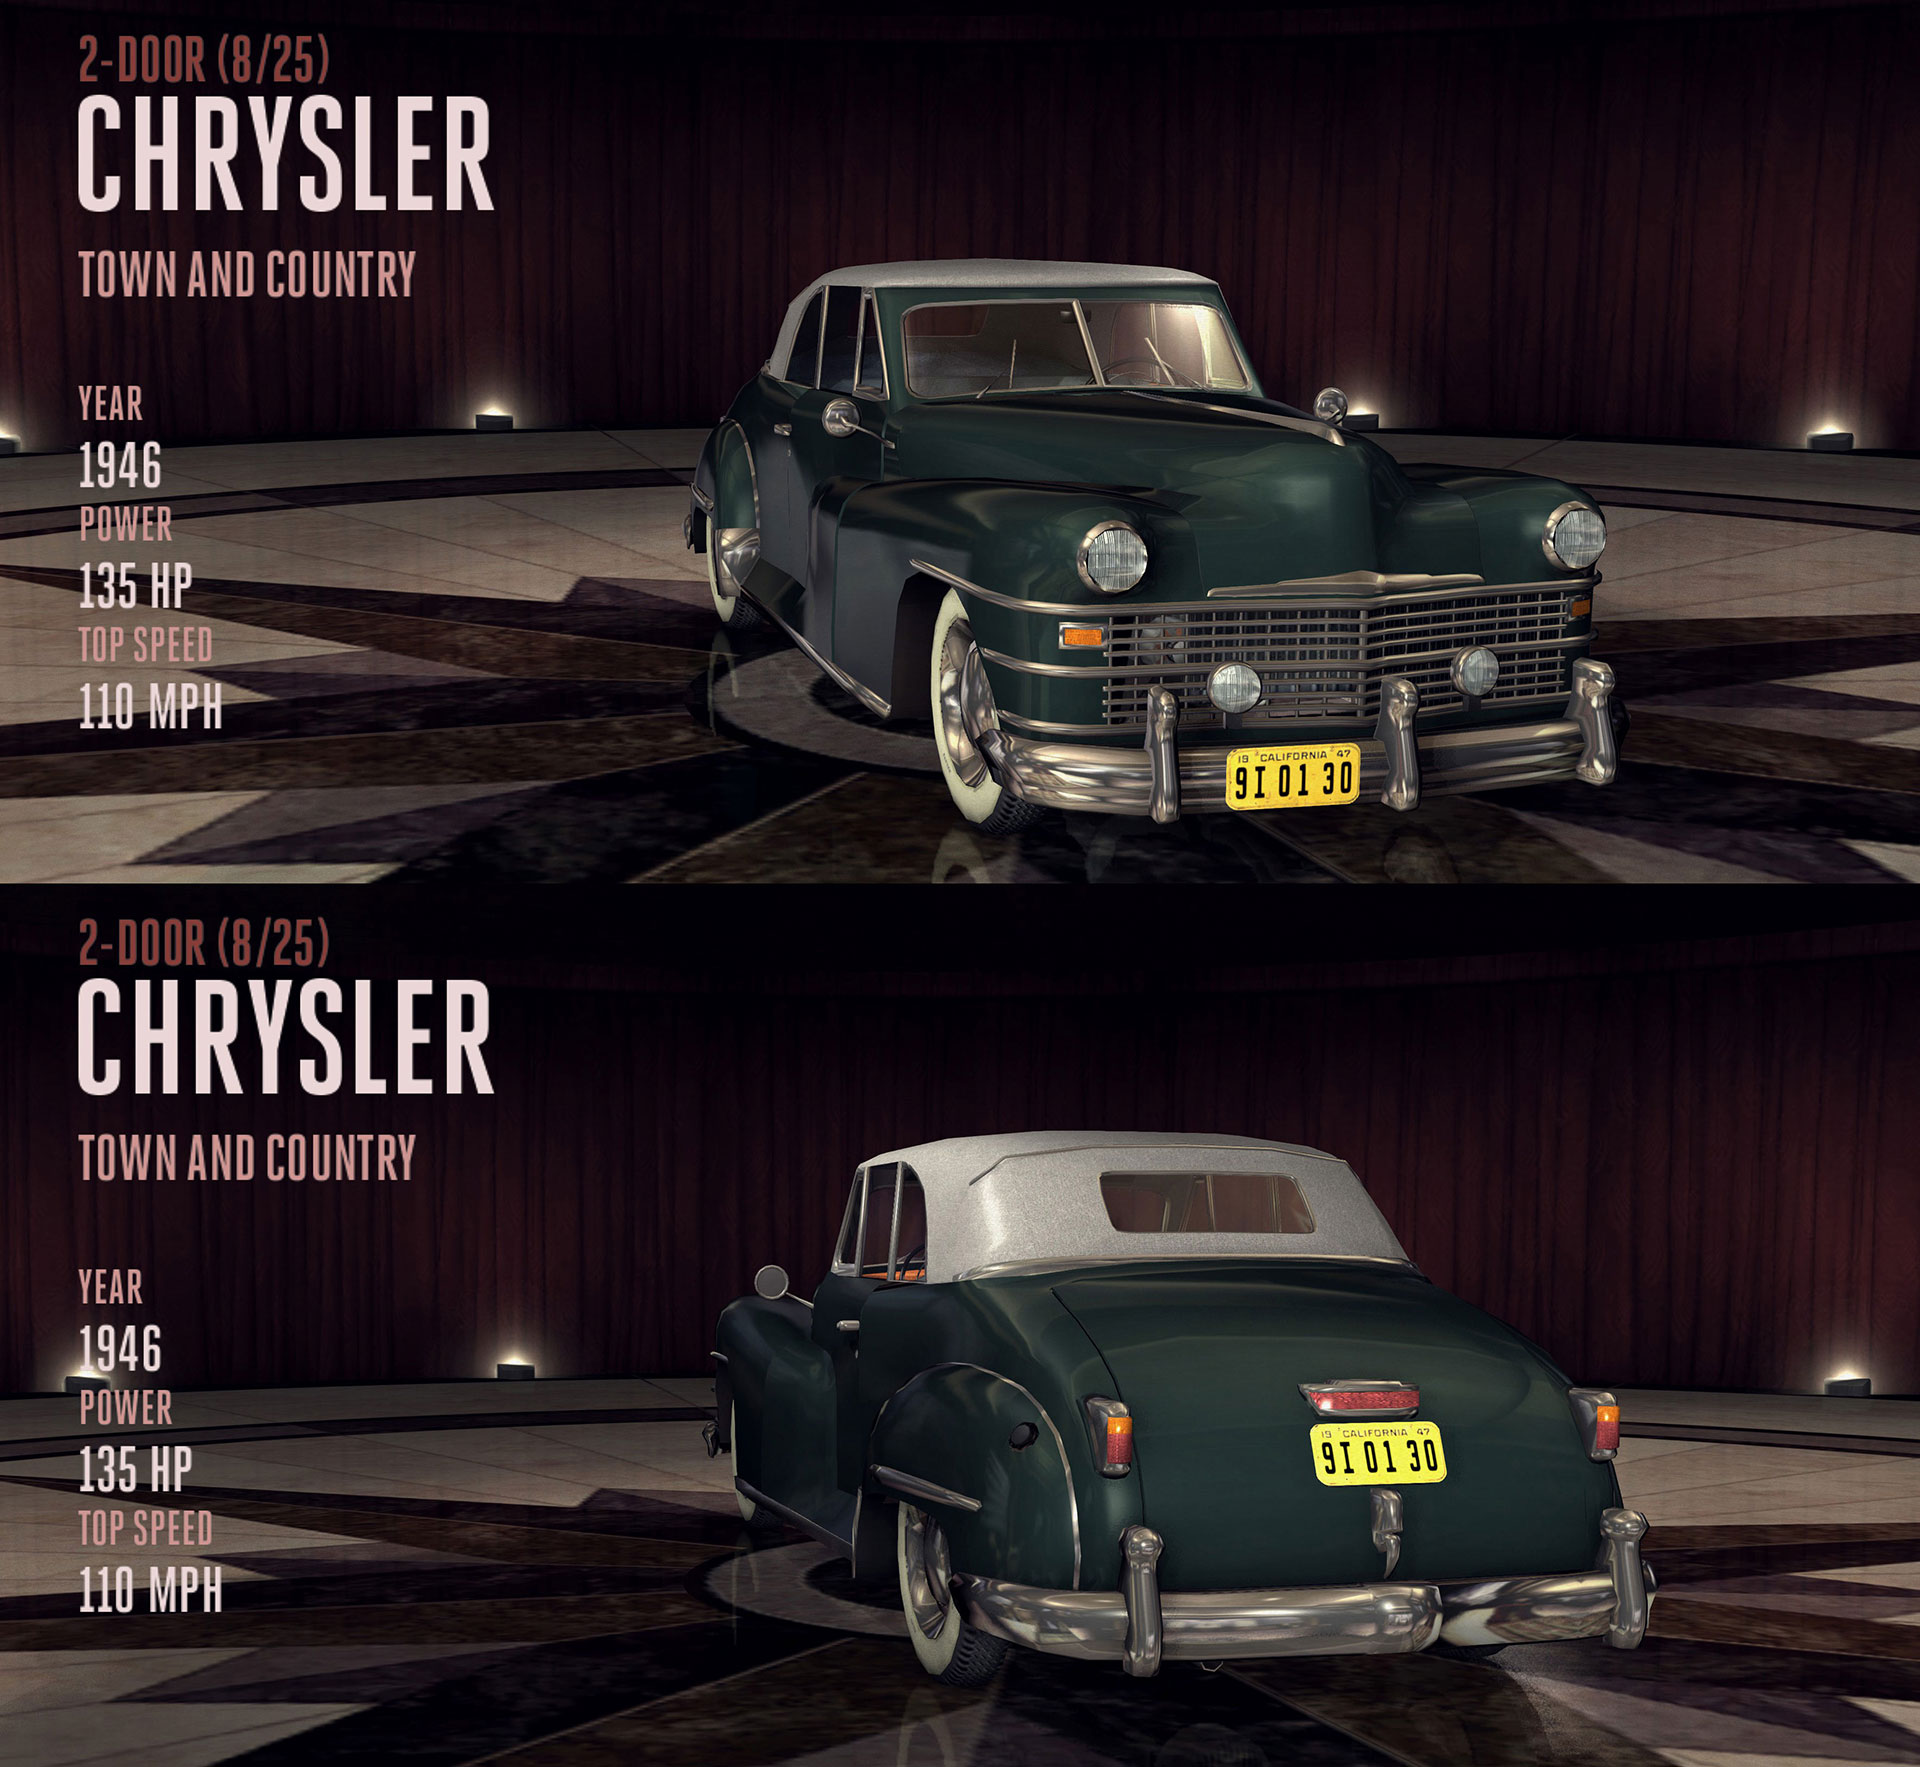 Archivo:1946-chrysler-town-and-country.jpg